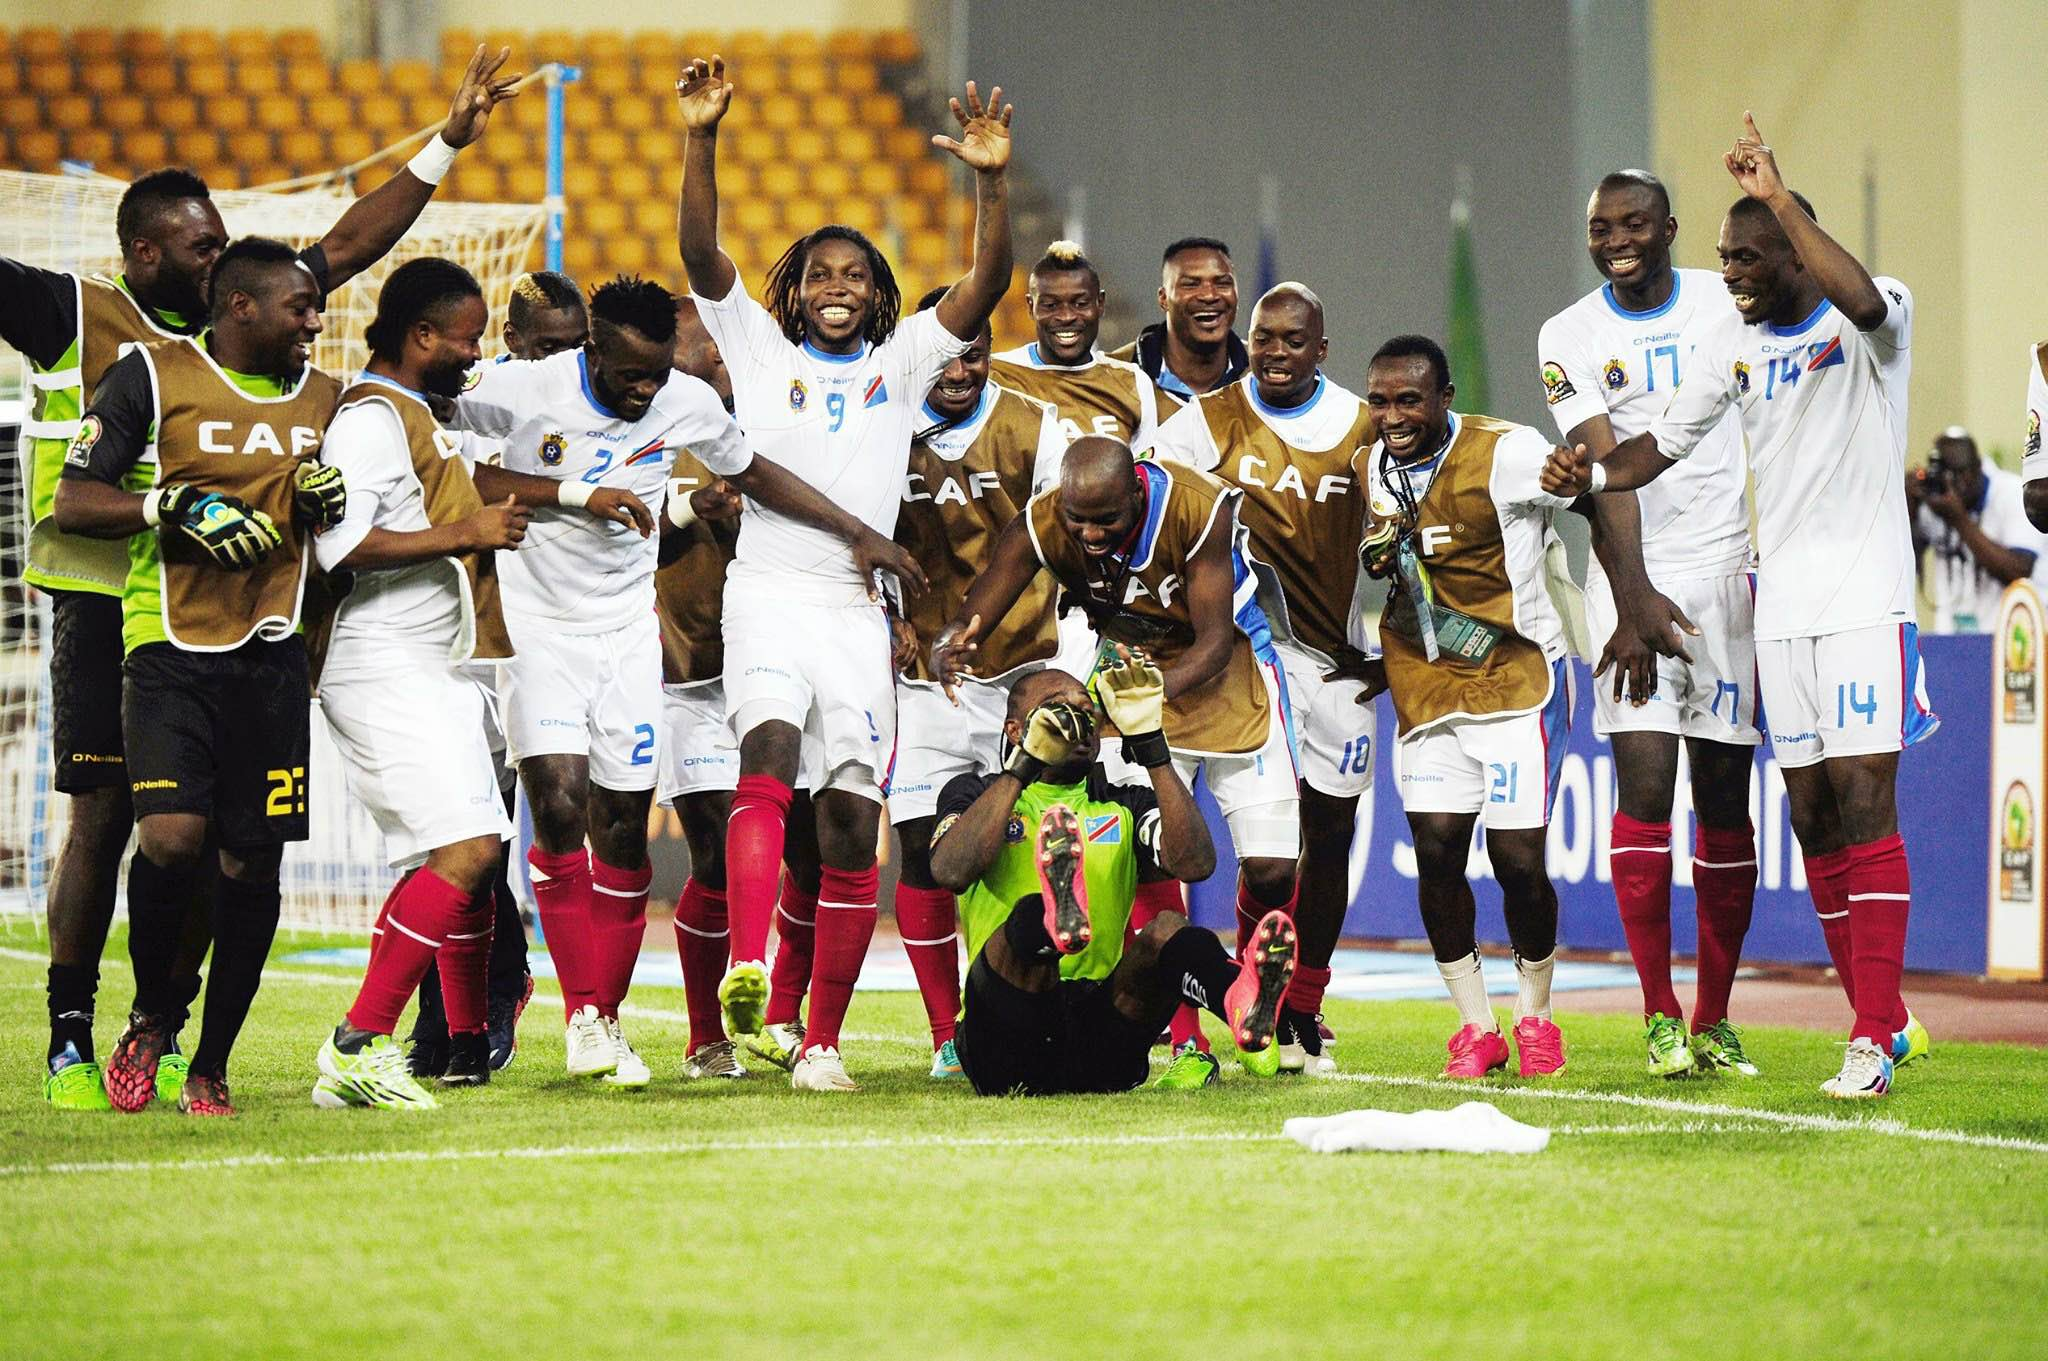 la RDC finit 3ème de la CAN 2015